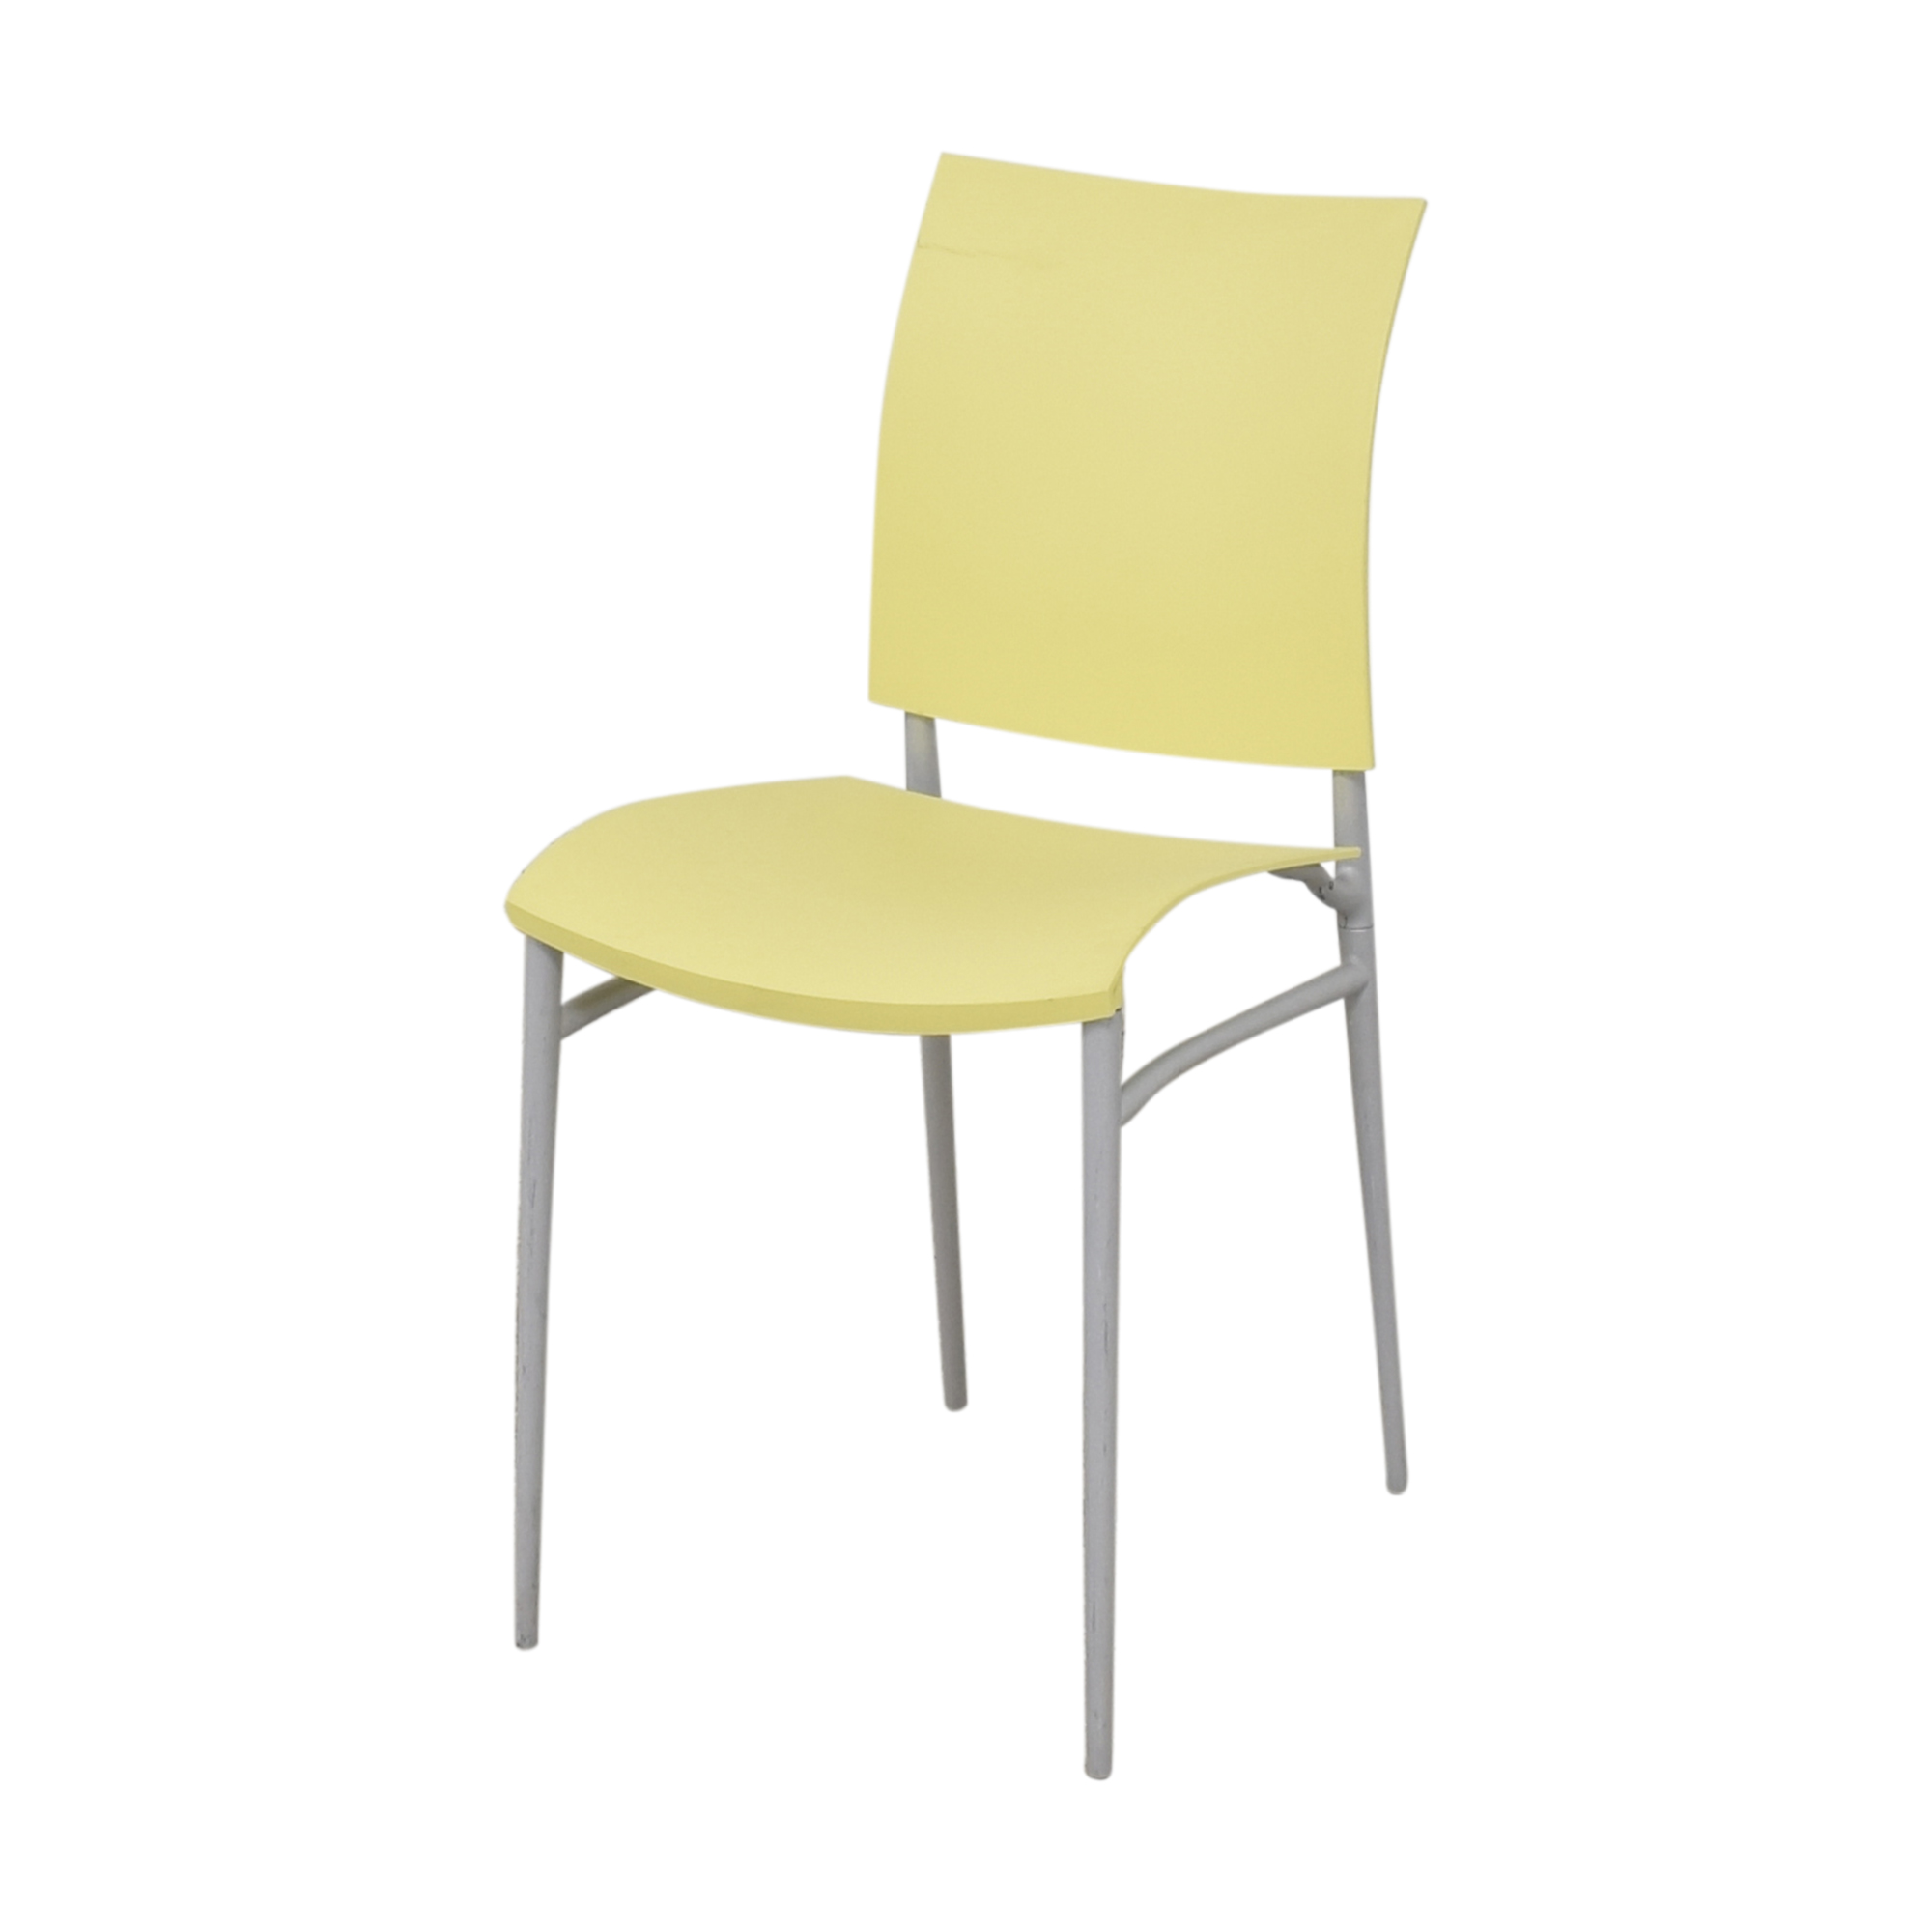 Cassina Cassina Miss C.O.C.O. Folding Chairs Chairs